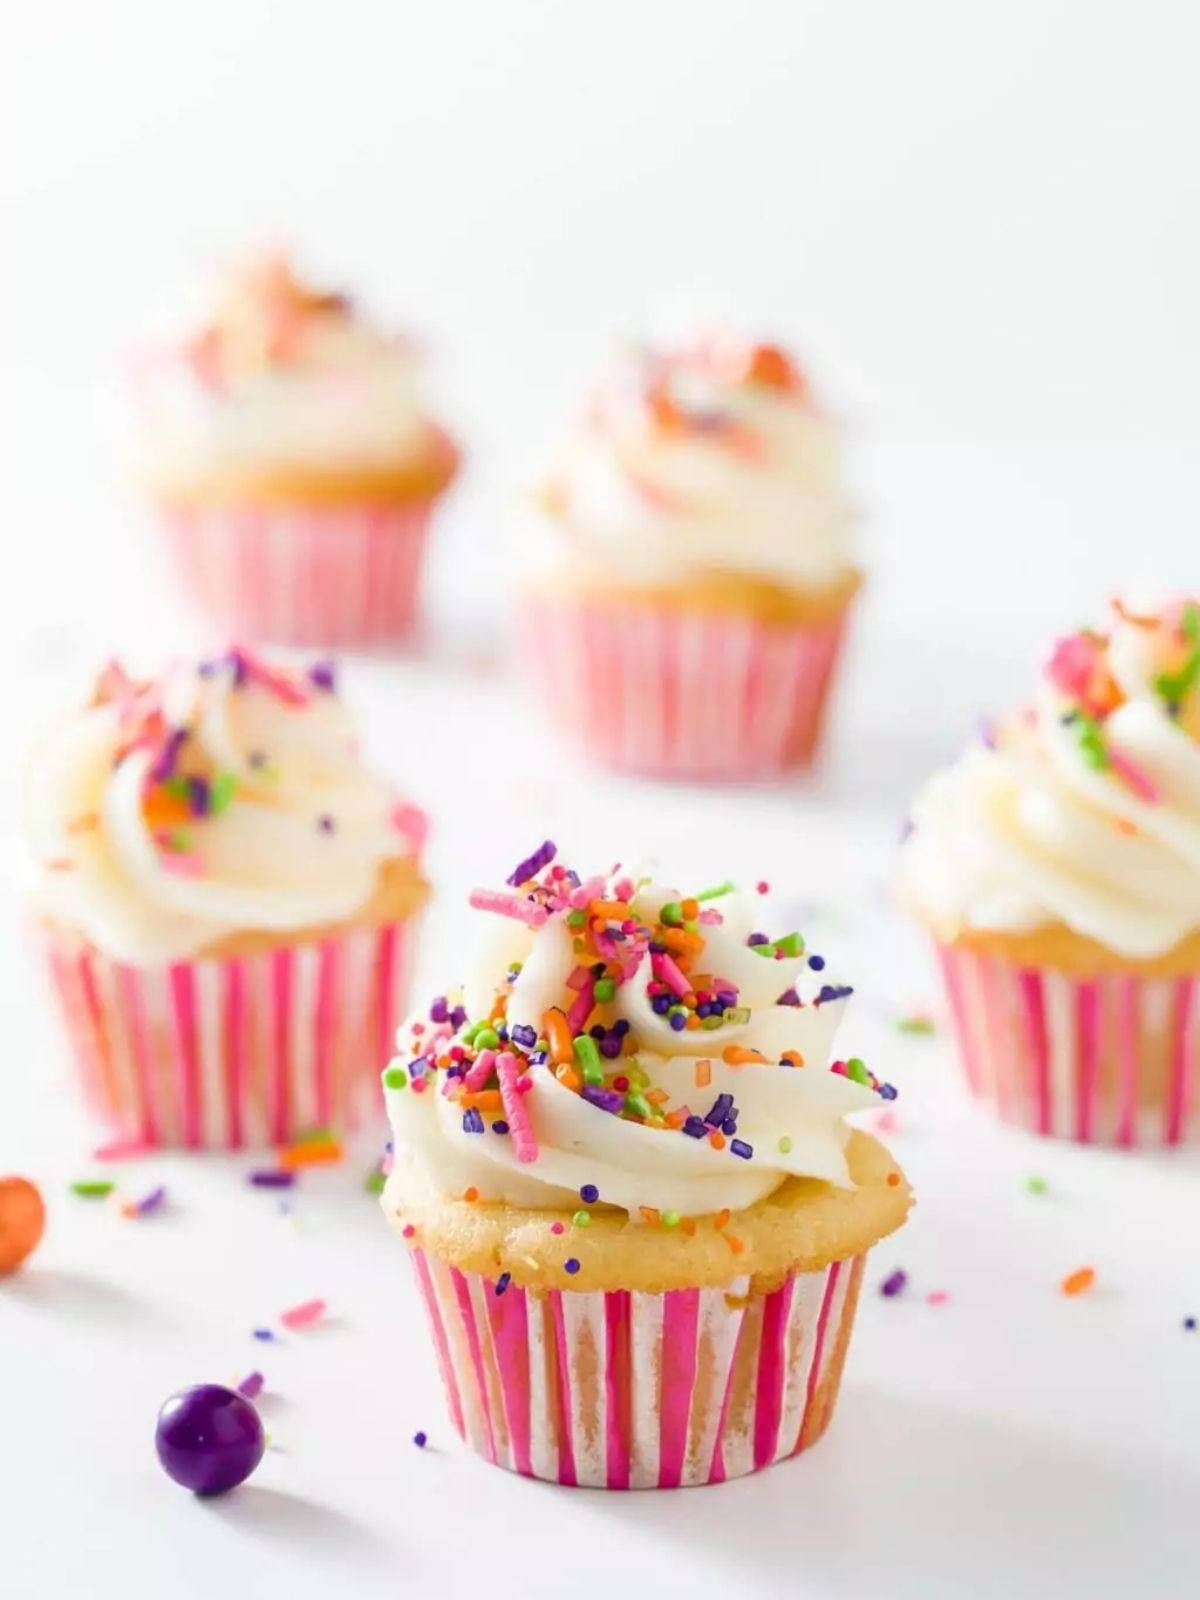 Mini cupcakes frosted with vanilla buttercream with rainbow sprinkles on top.